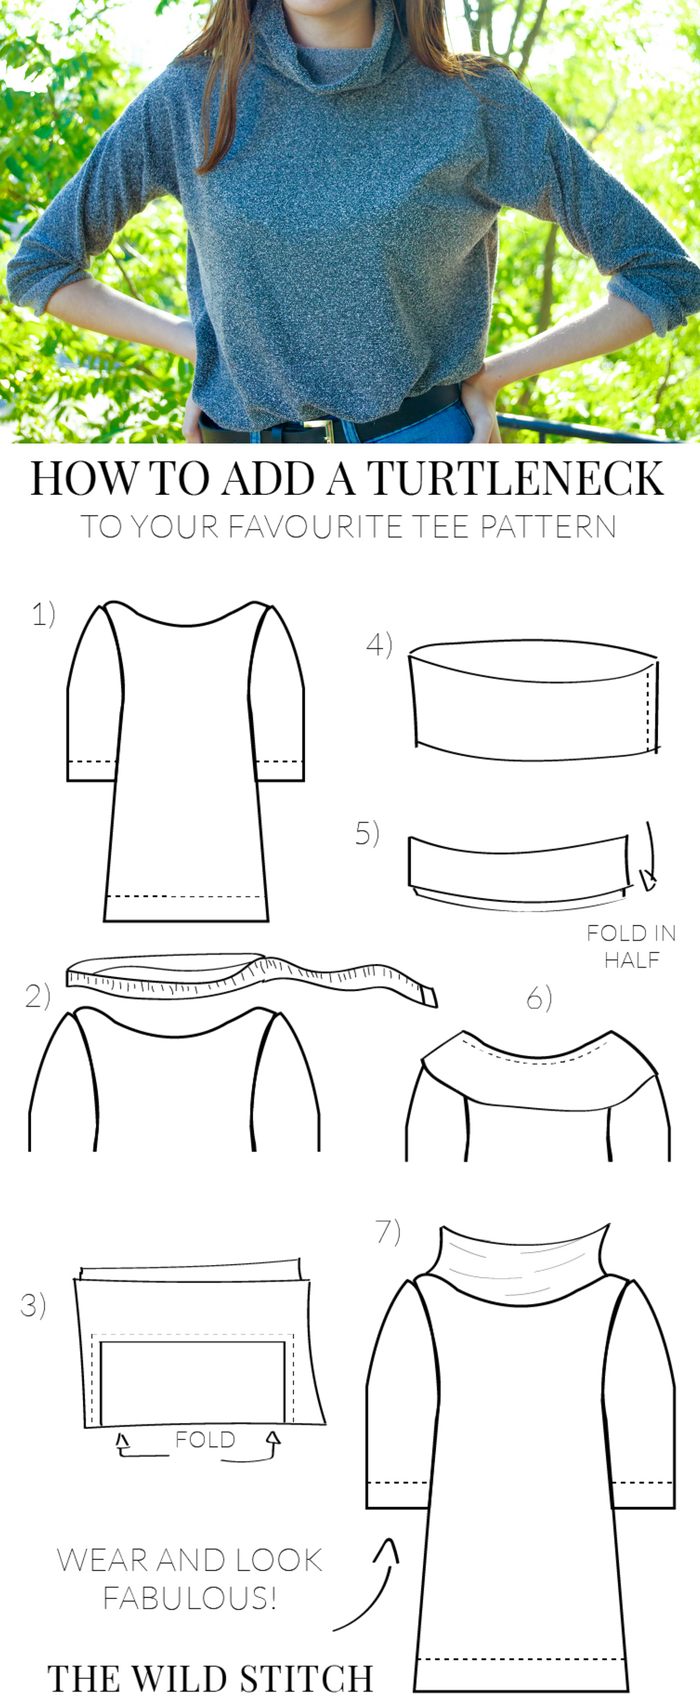 This easy tutorial will show you how to sew your own trendy turtleneck onto any tee shirt pattern you already have!